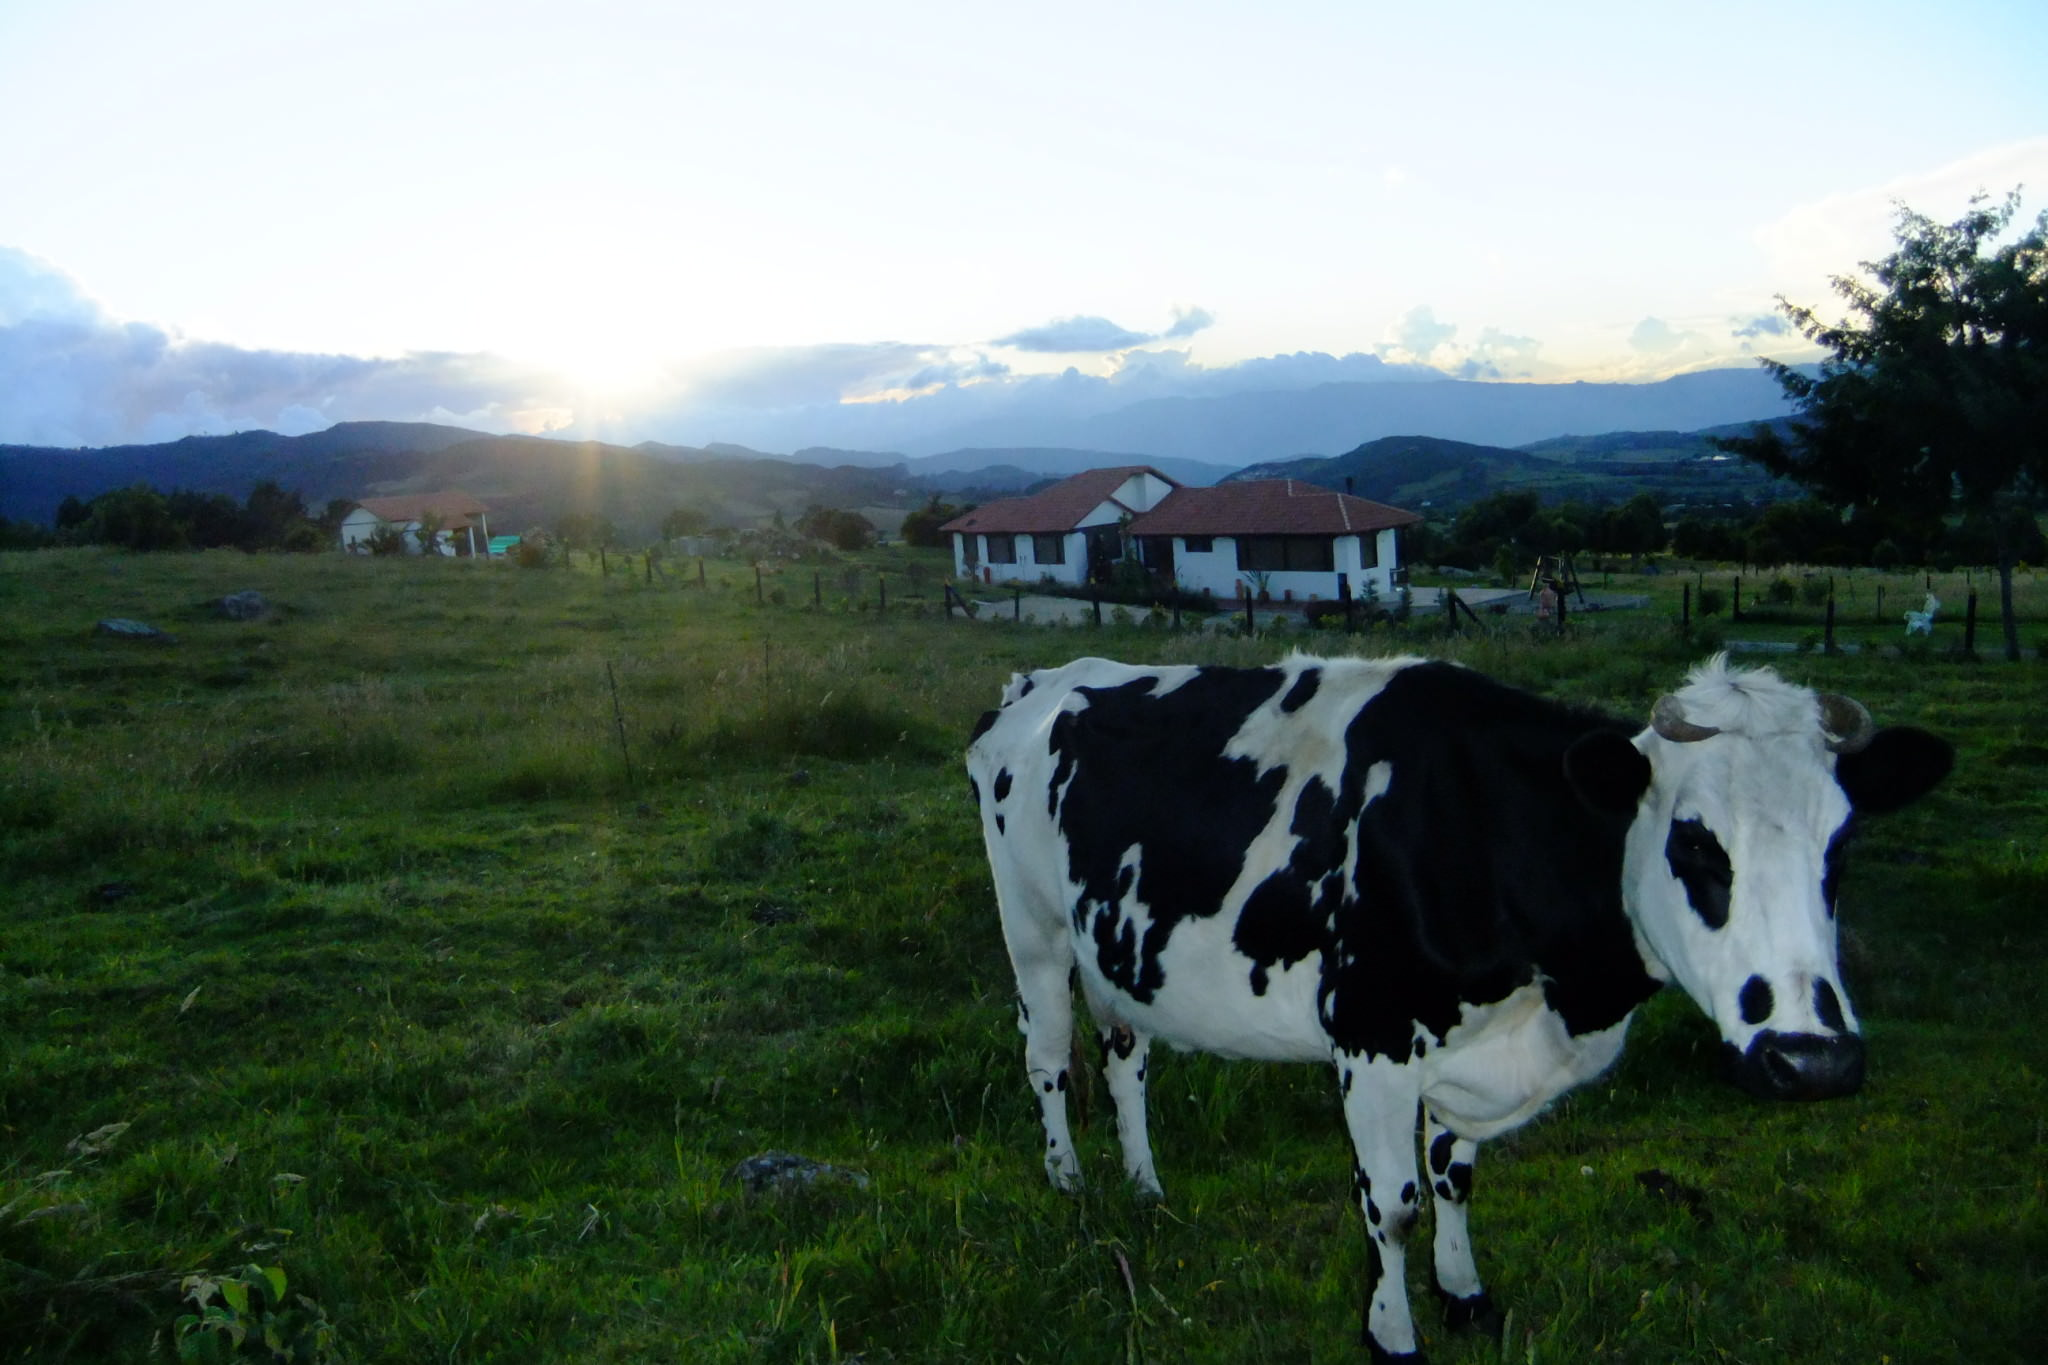 swapped his camera for a cow